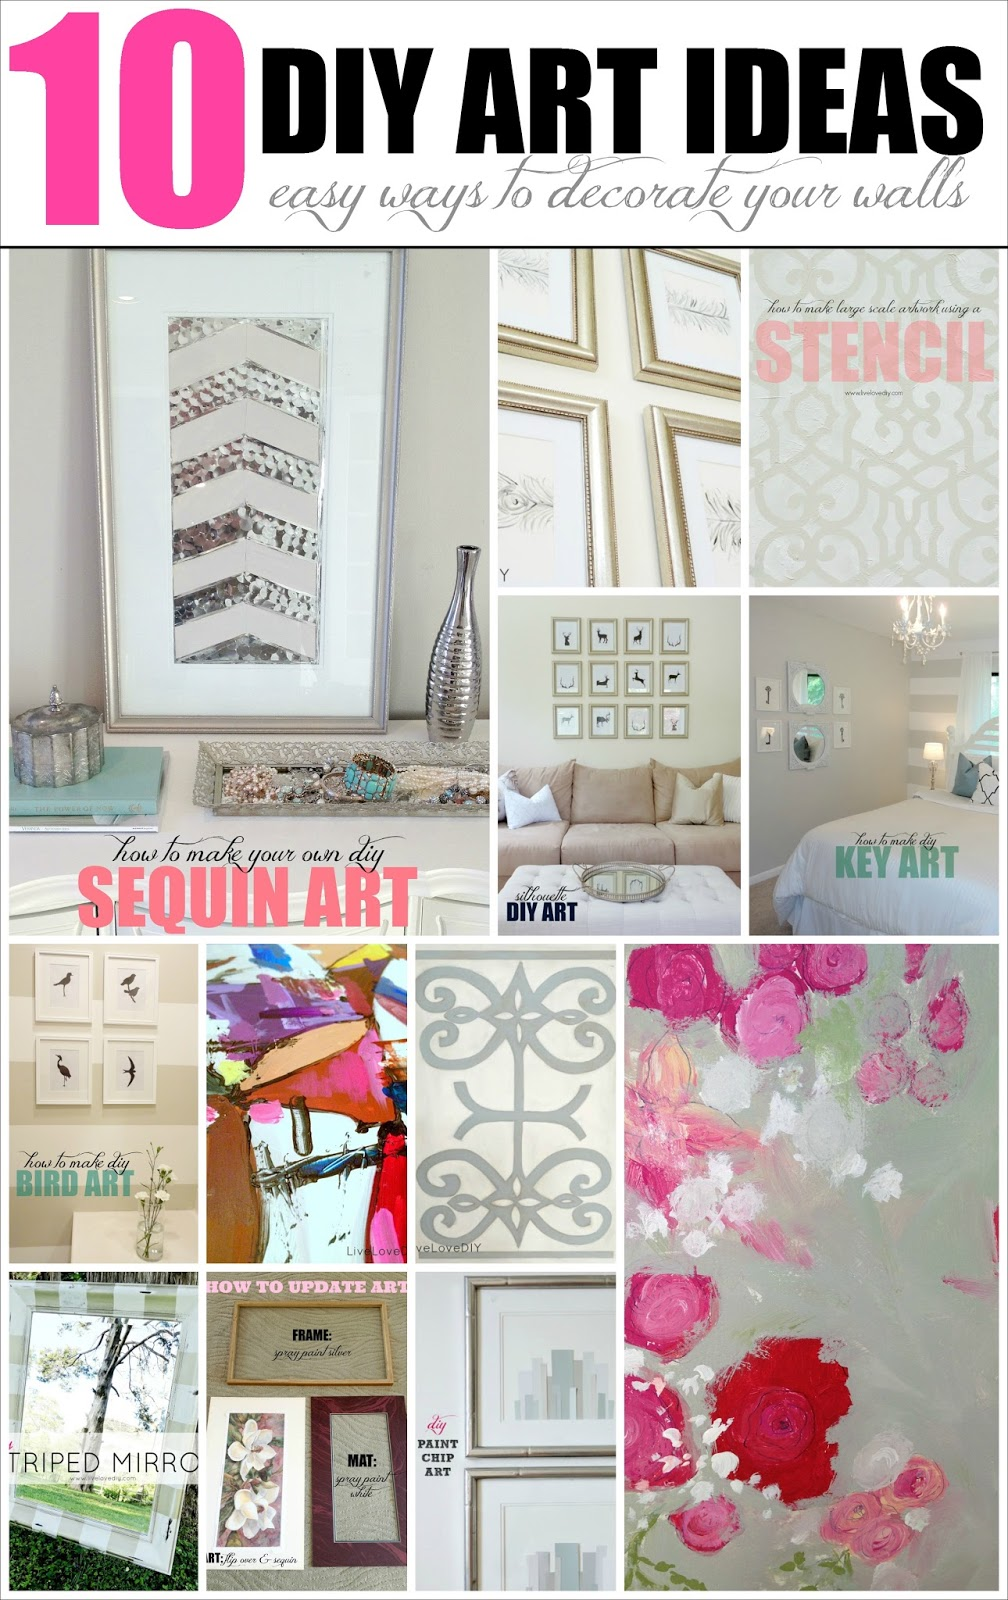 Livelovediy 10 diy art ideas easy ways to decorate your walls follow solutioingenieria Gallery